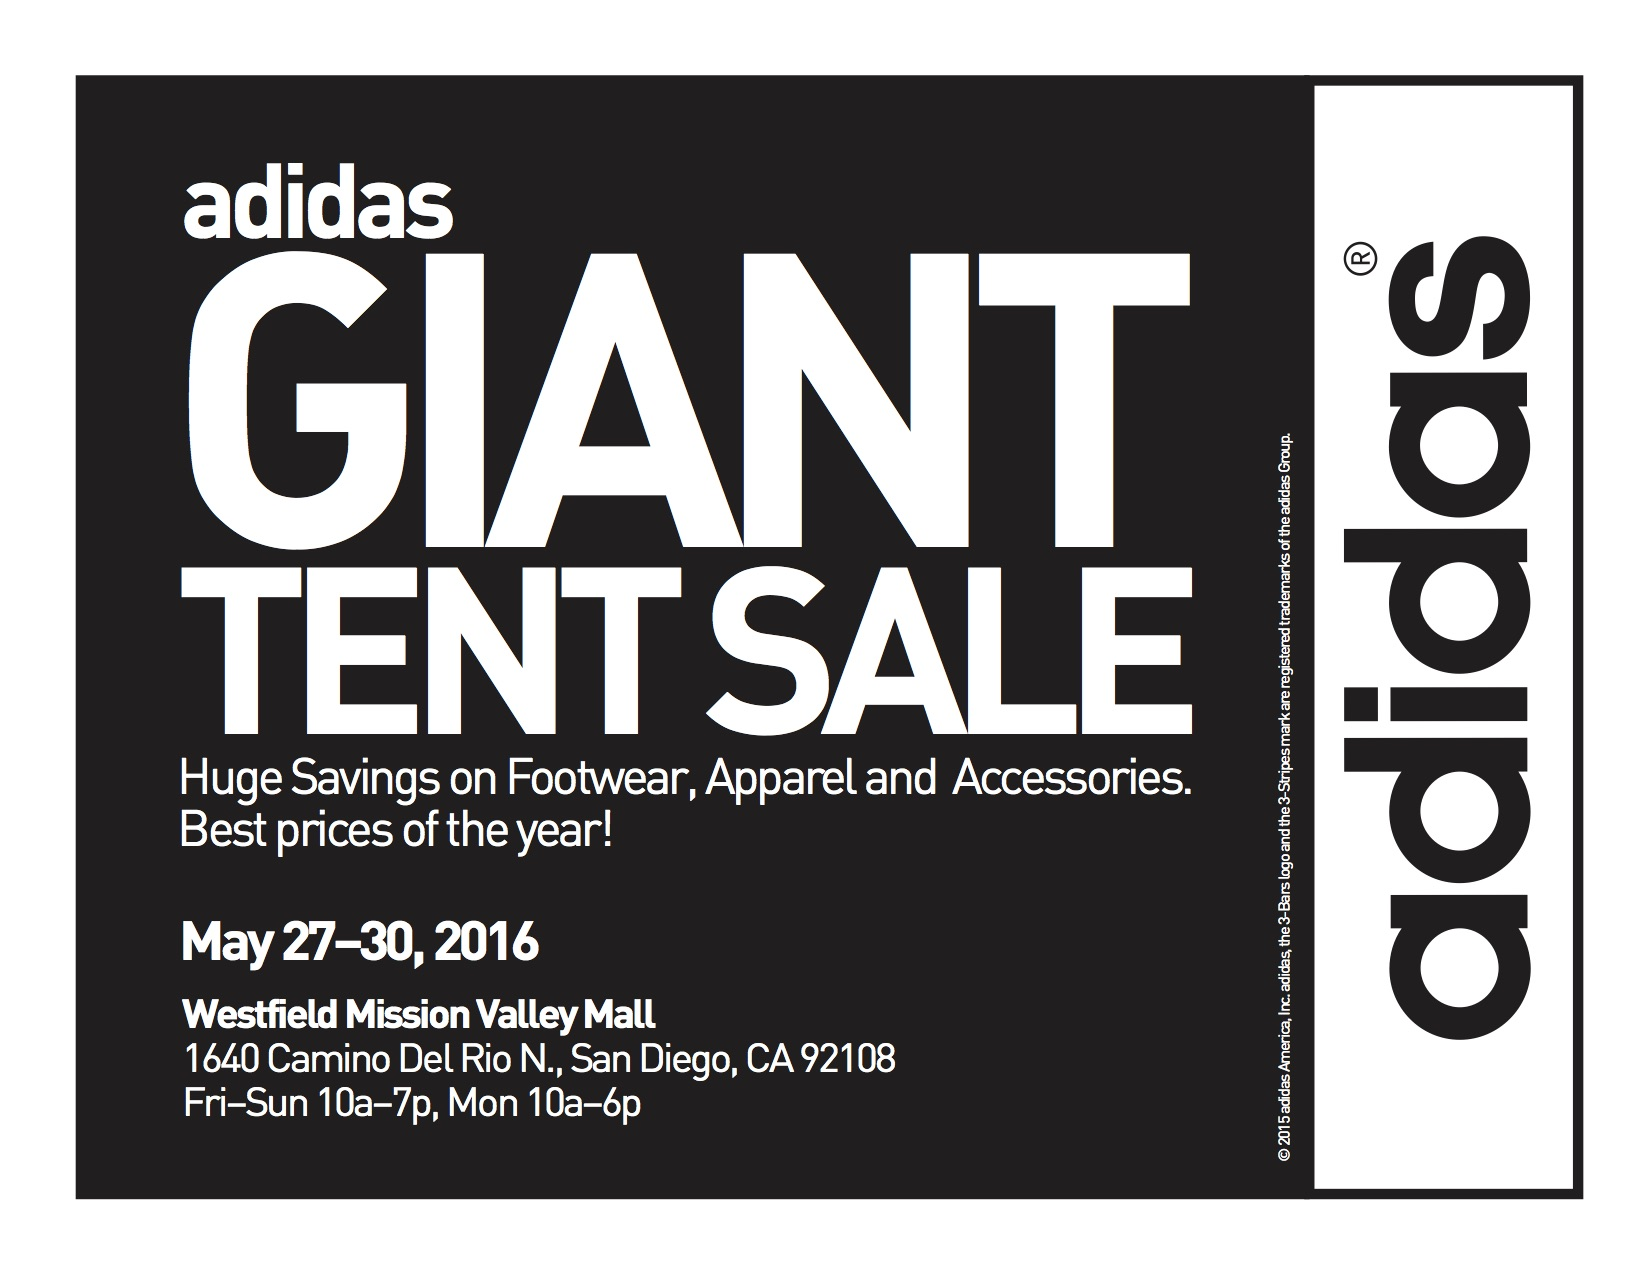 adidas giant tent sale 2017